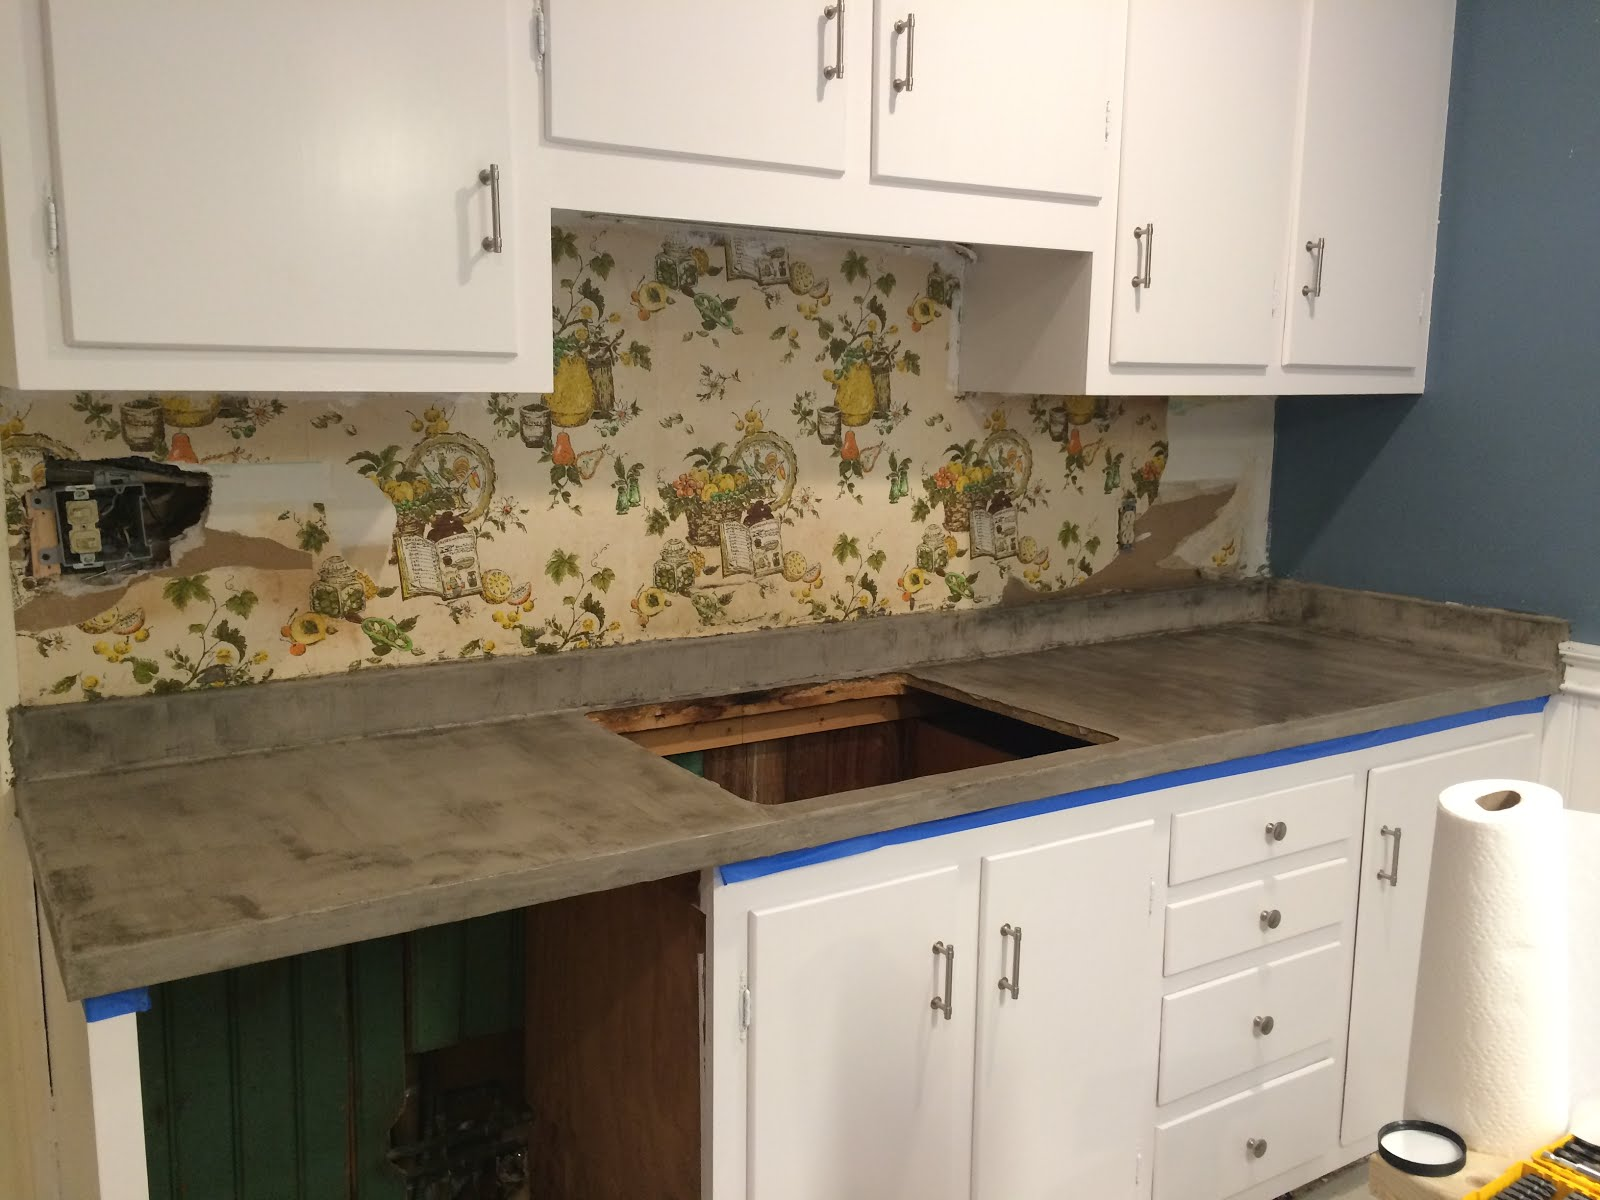 After Letting The Concrete Cure For About 72 Hours, I Sealed The Countertops.  I Used Tuff Duck Concrete Sealer. (available From Amazon).